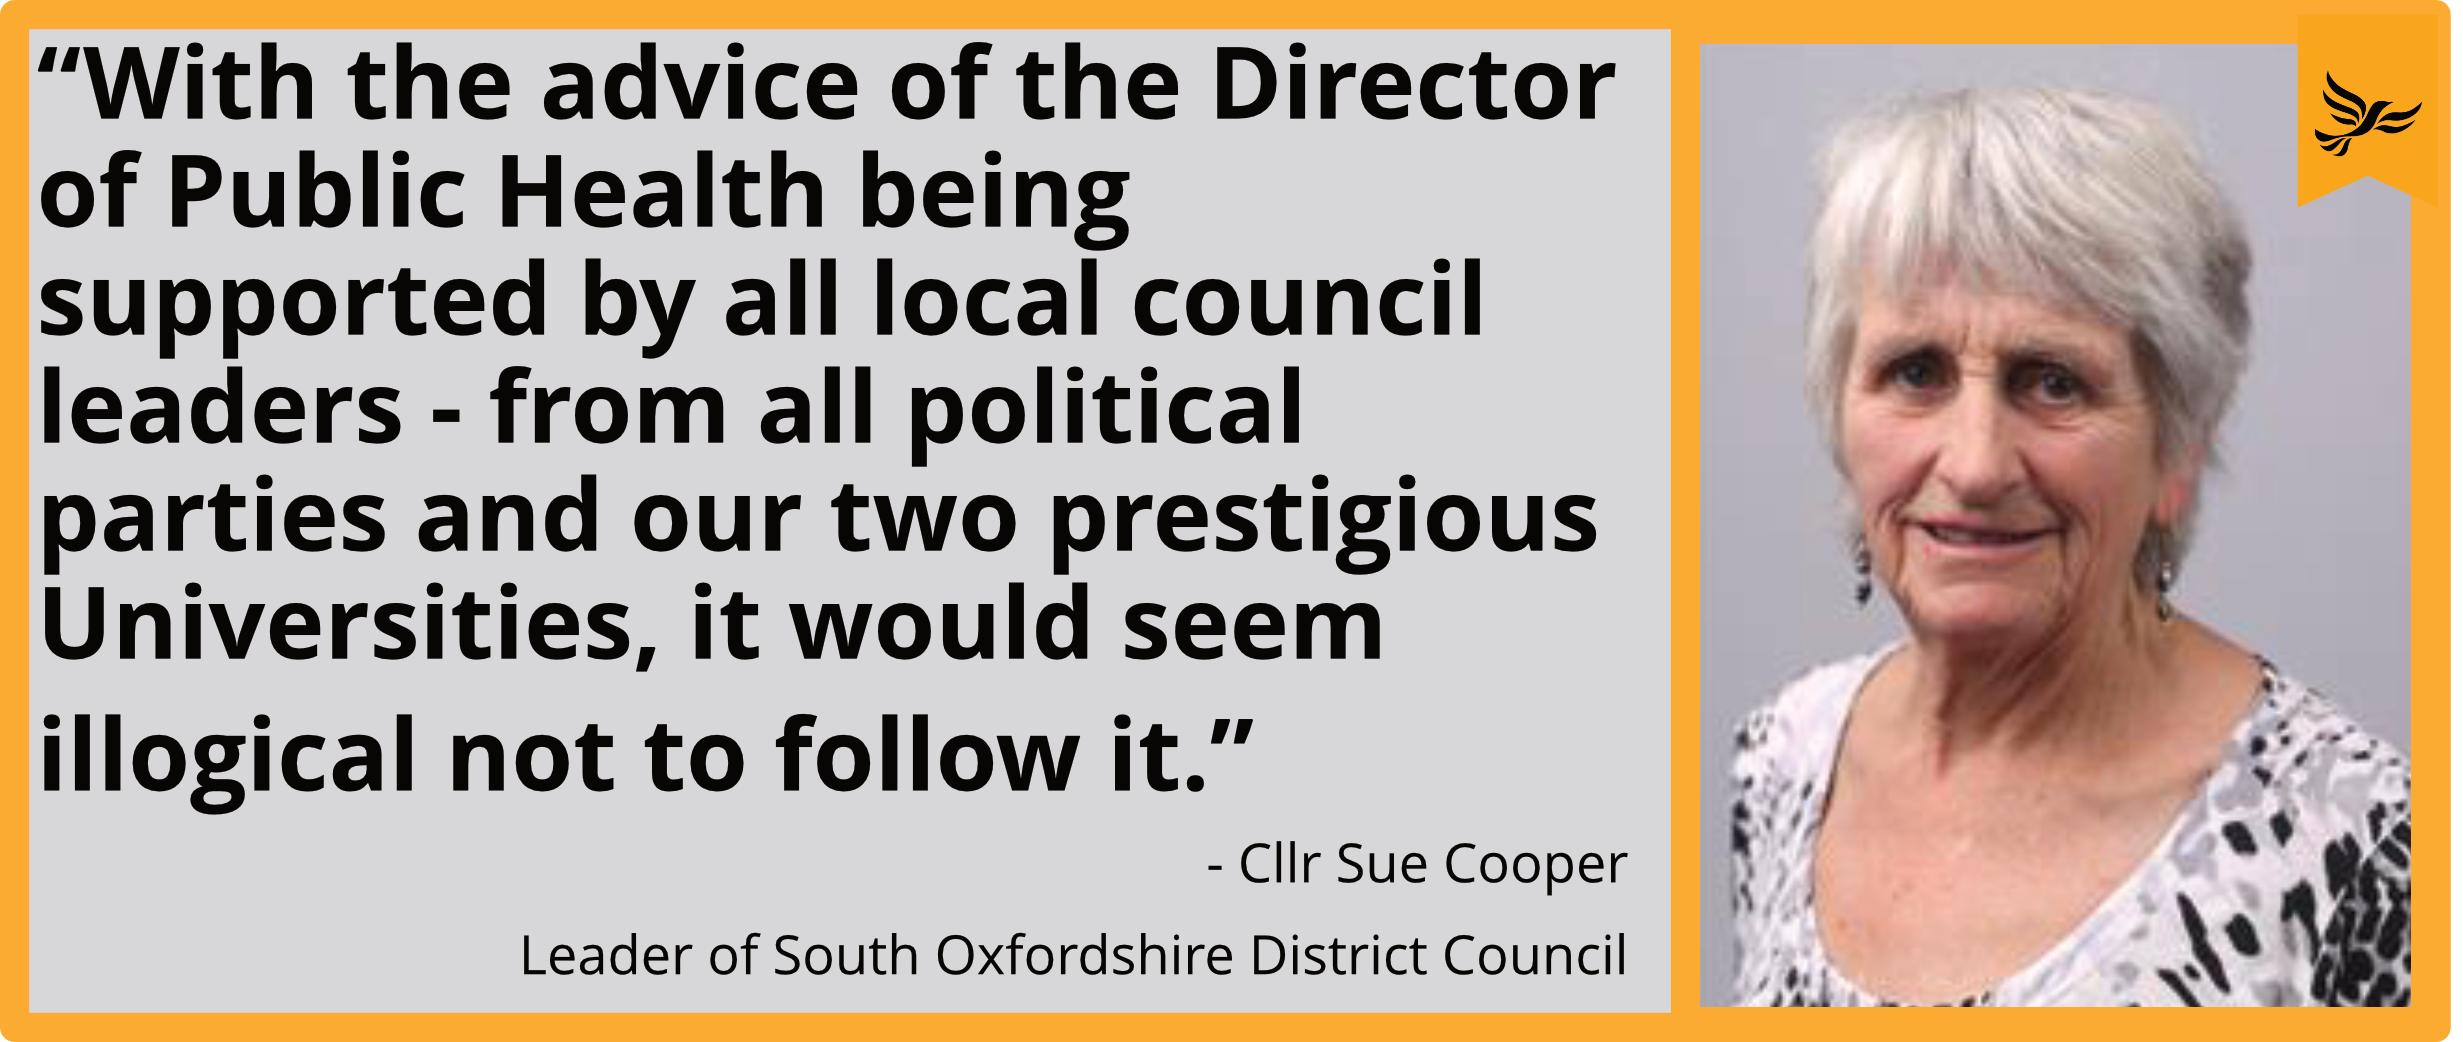 Key_Cllr Sue Cooper